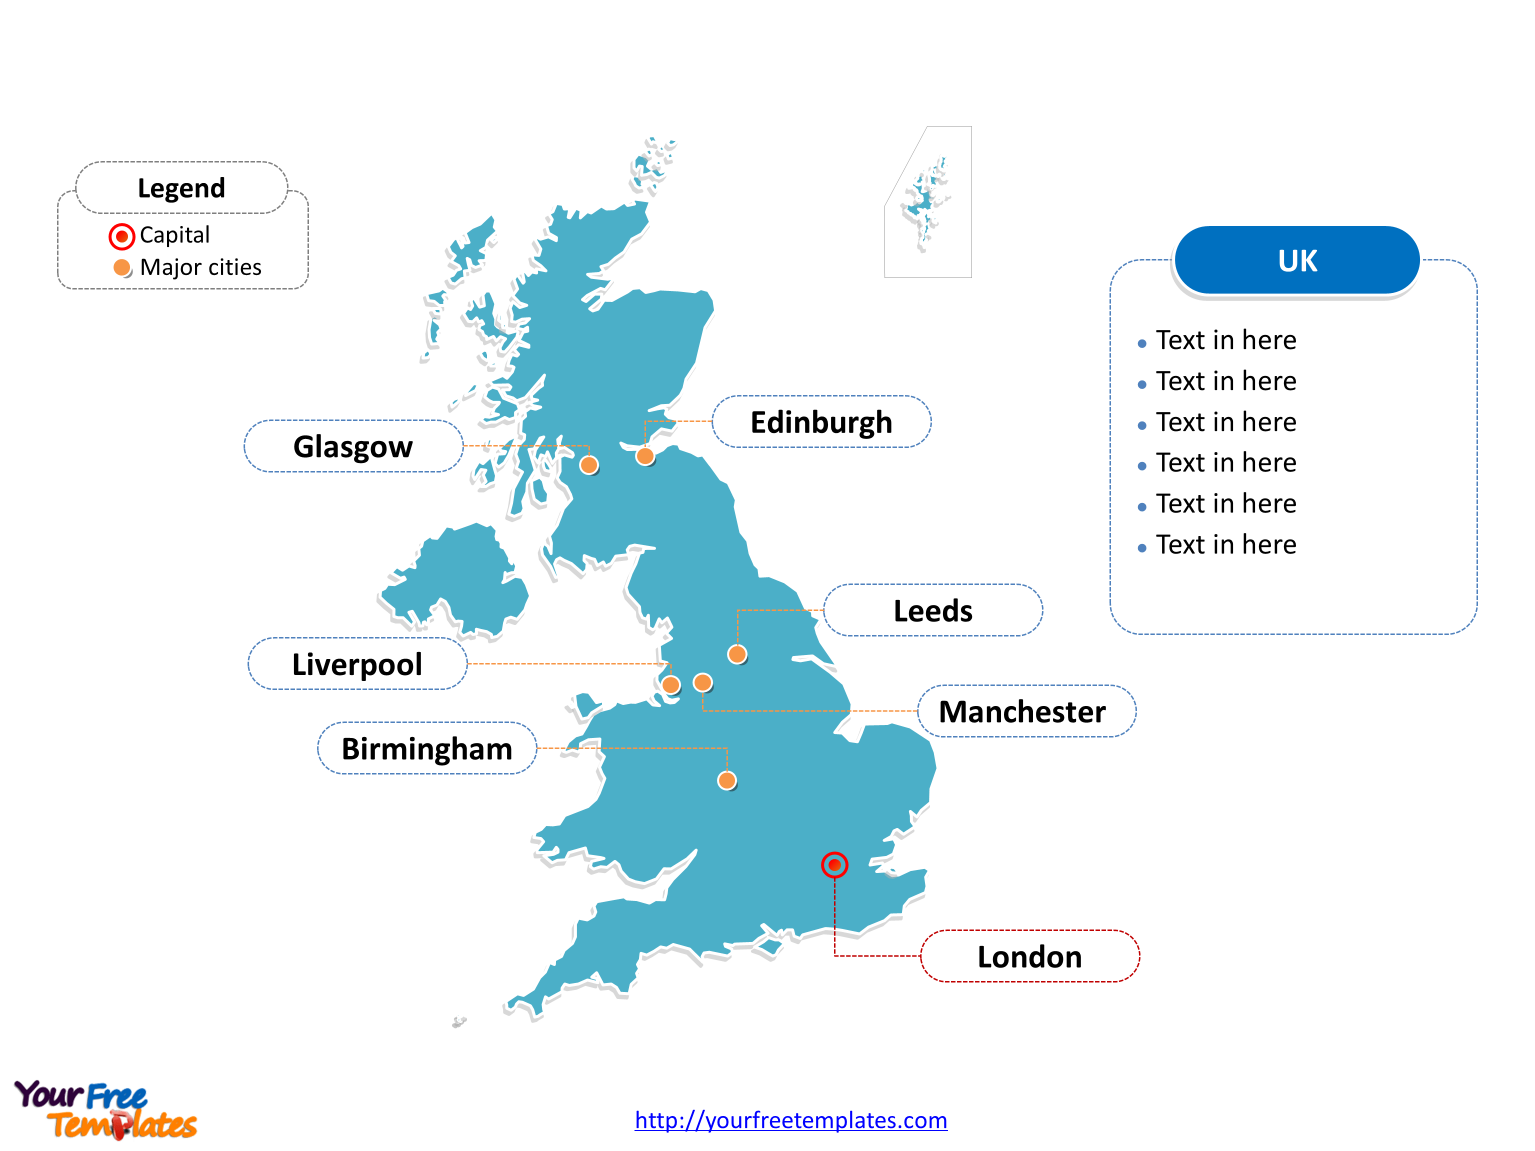 Free united kingdom map free powerpoint templates uk map with outline and cities labeled on the united kingdom map powerpoint templates toneelgroepblik Image collections